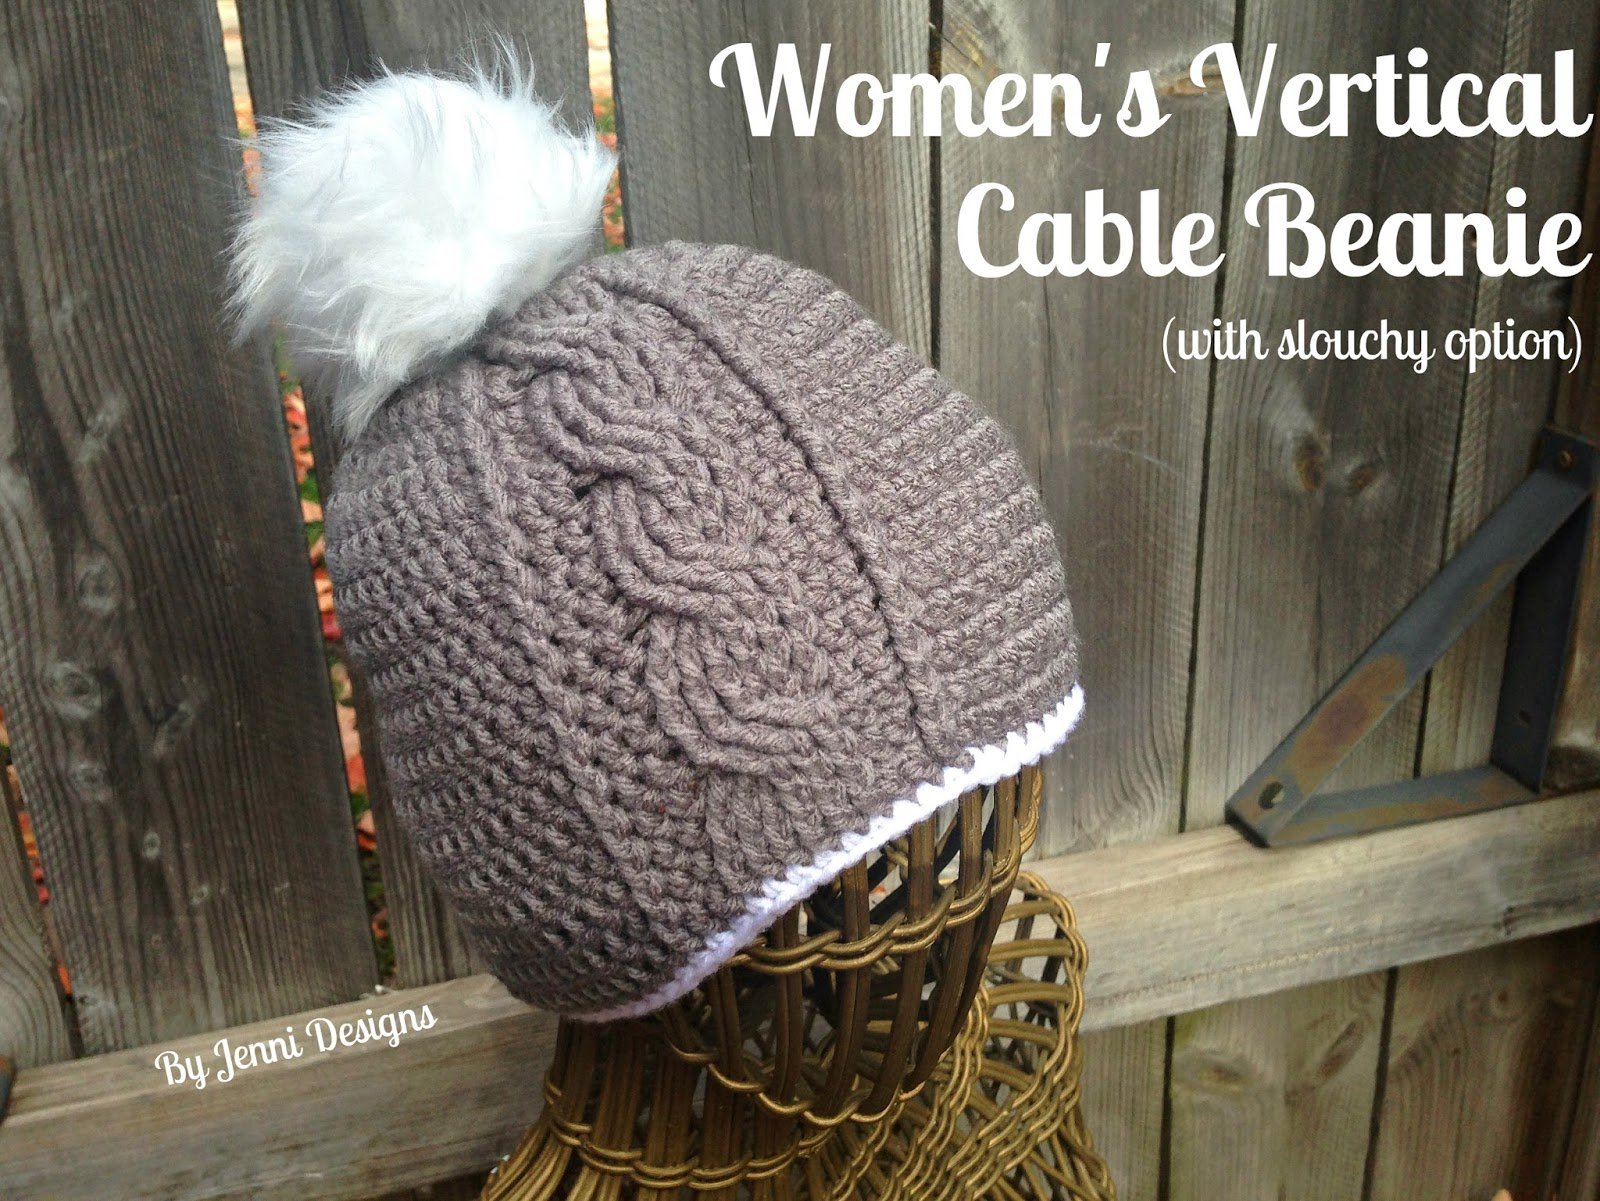 Free Crochet Pattern  Women s Vertical Cable Beanie with Slouchy Option 9e11722686